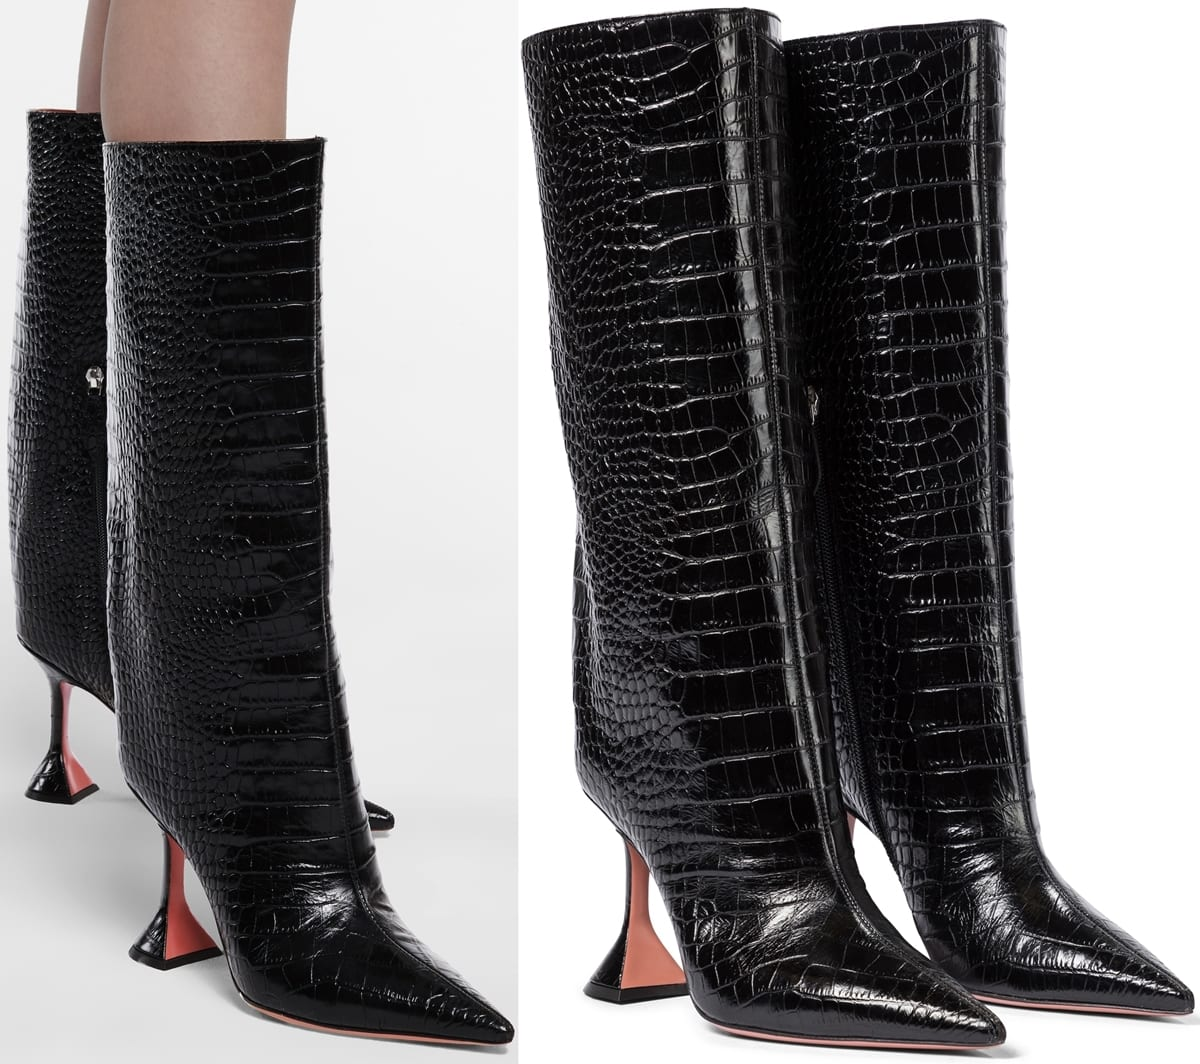 These black croc-effect leather Amina Muaddi knee-high boots are replete with some of the label's most defining features